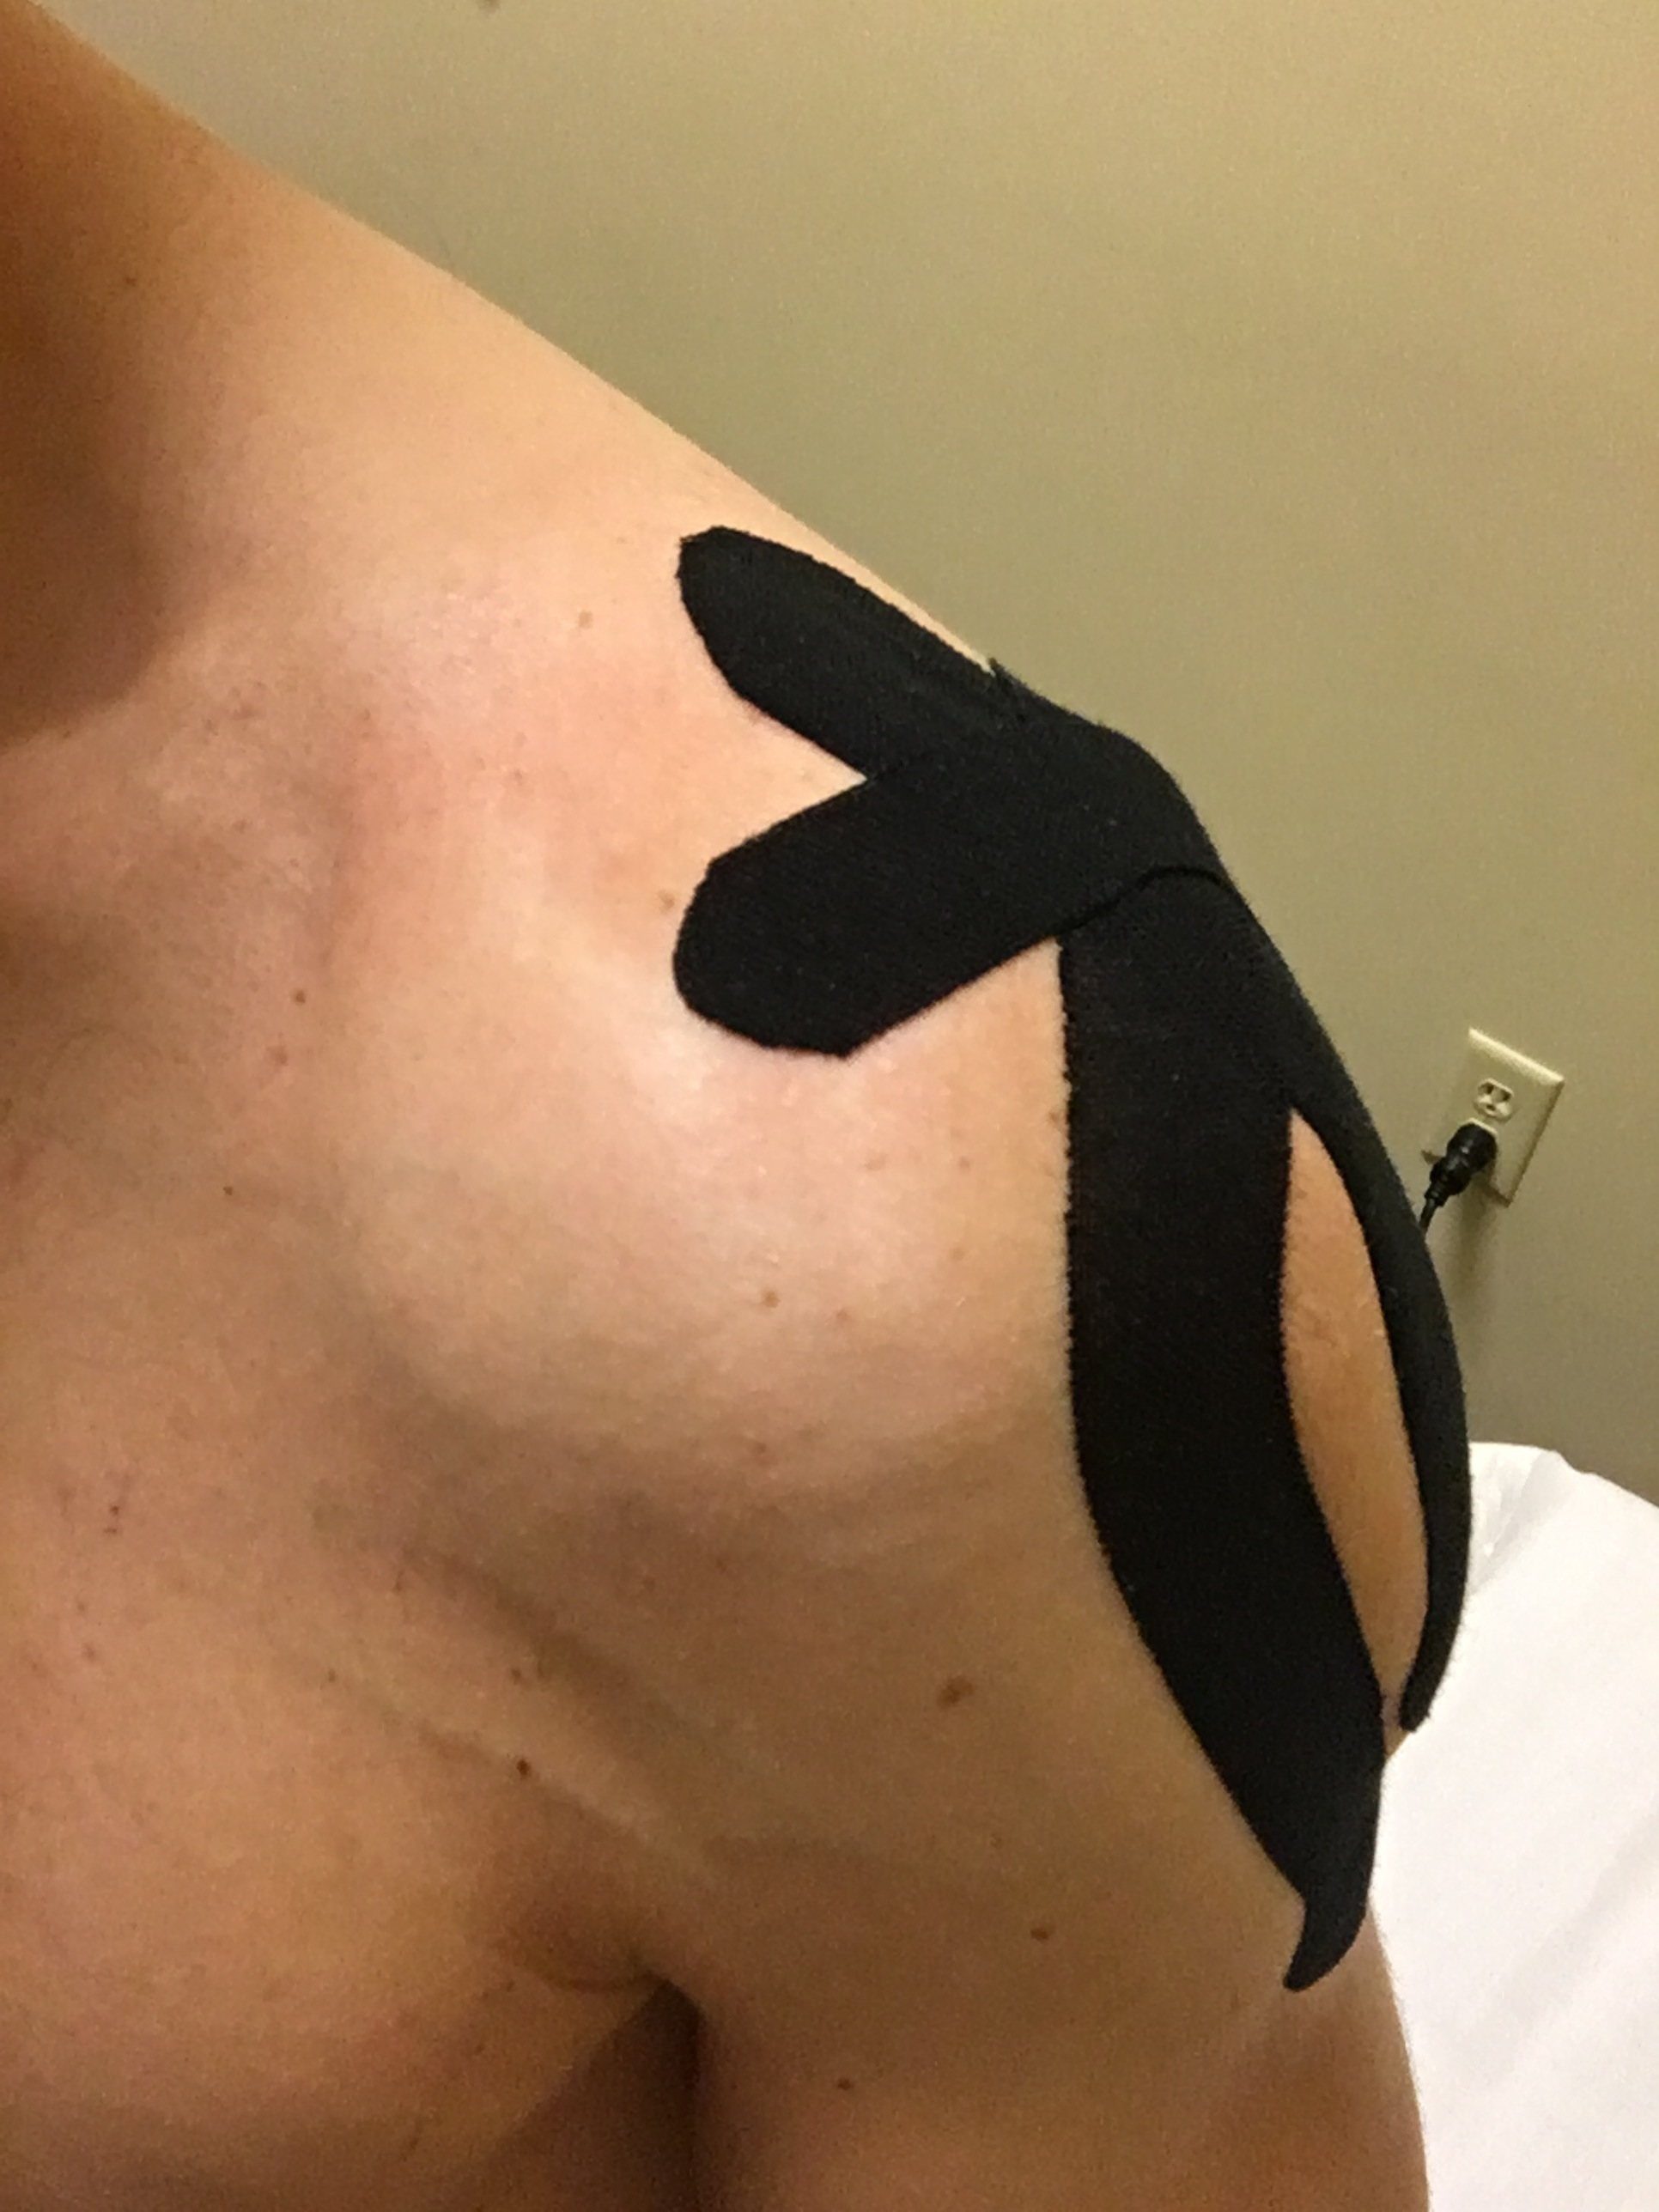 Kinesiotape to give a little support to the healing rotator cuff and GH ligaments. Thanks Darla and Josh for taping me everyday for a week.